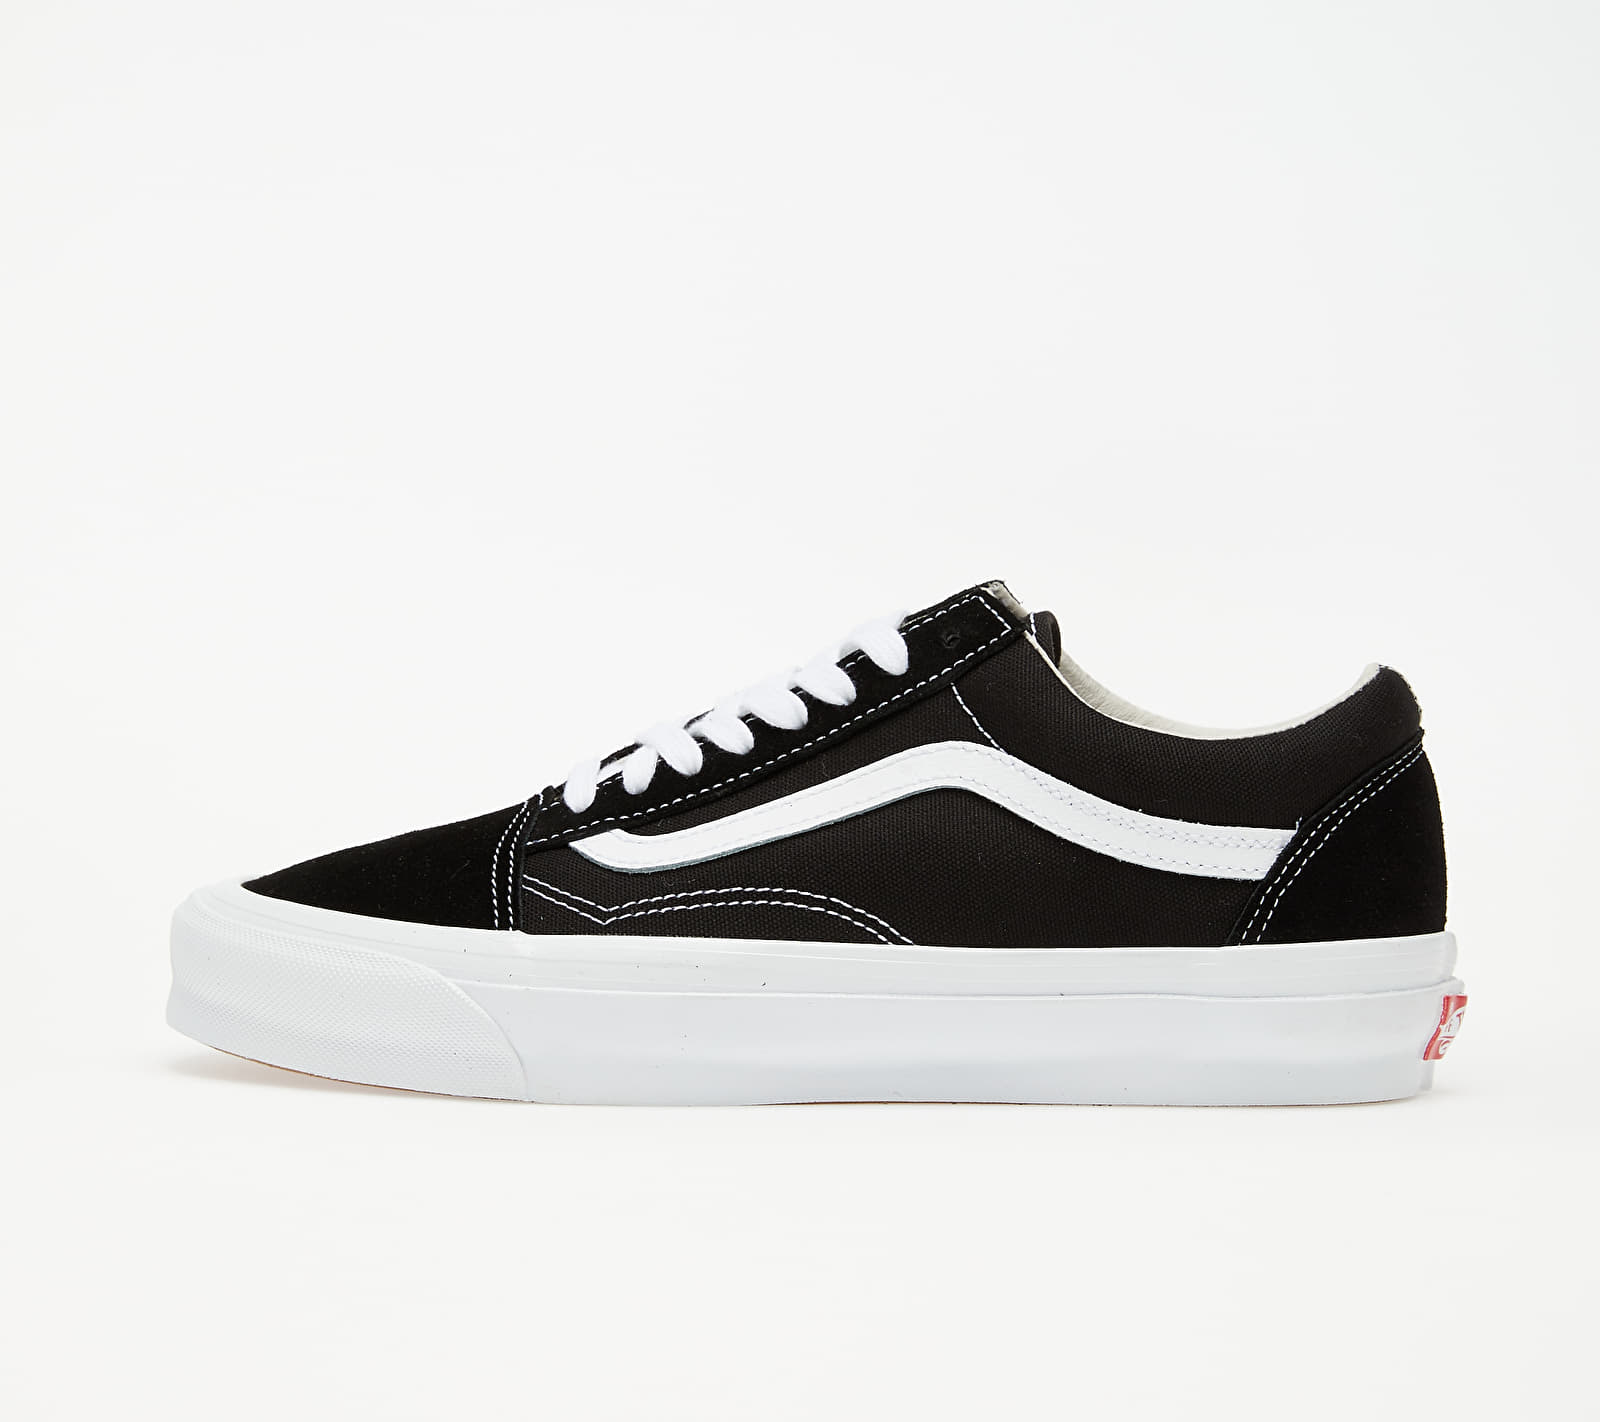 Vans Vault OG Old Skool LX (Suede/ Canvas) Black EUR 38